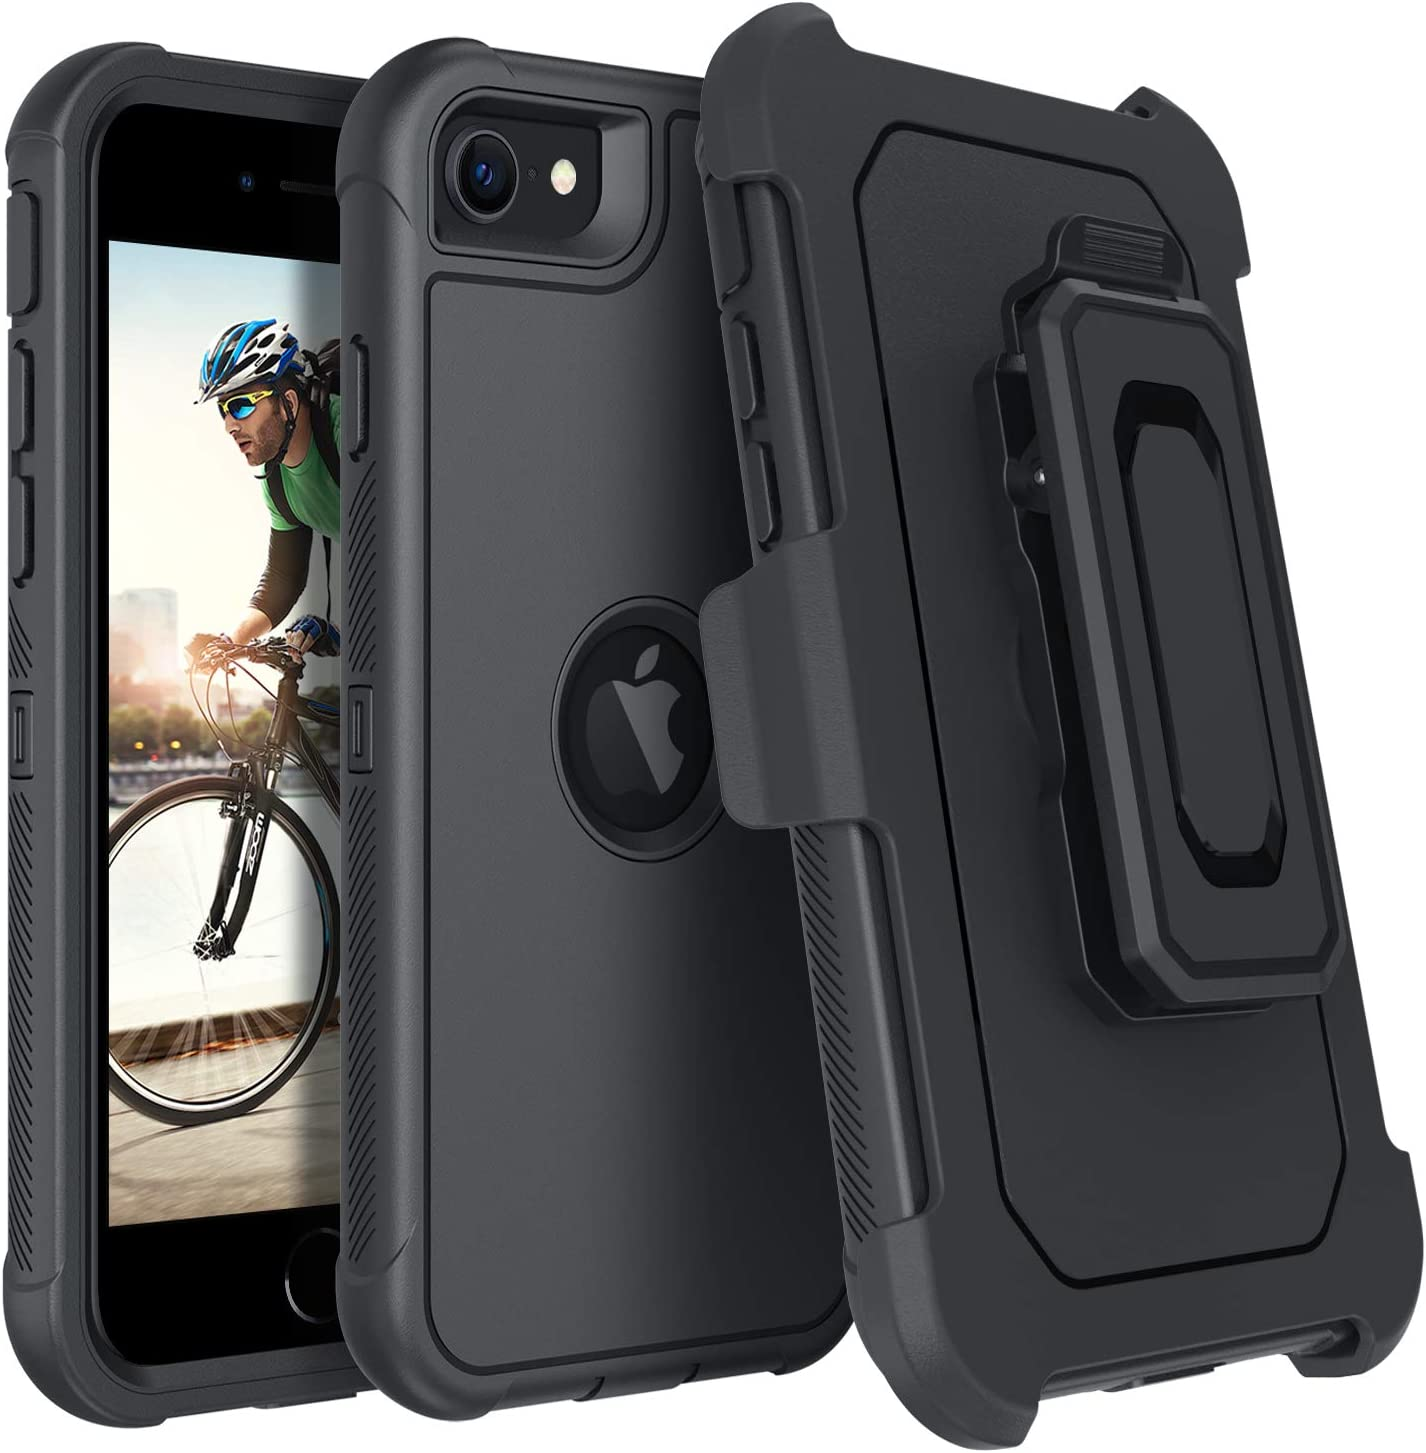 DUEDUE iPhone SE 2020 Case, Military Grade Shockproof Drop Protection Heavy Duty Full Body Rugged Cover with Kickstand Belt Clip Holster for iPhone SE2 2nd Generation 4.7 inch, Black